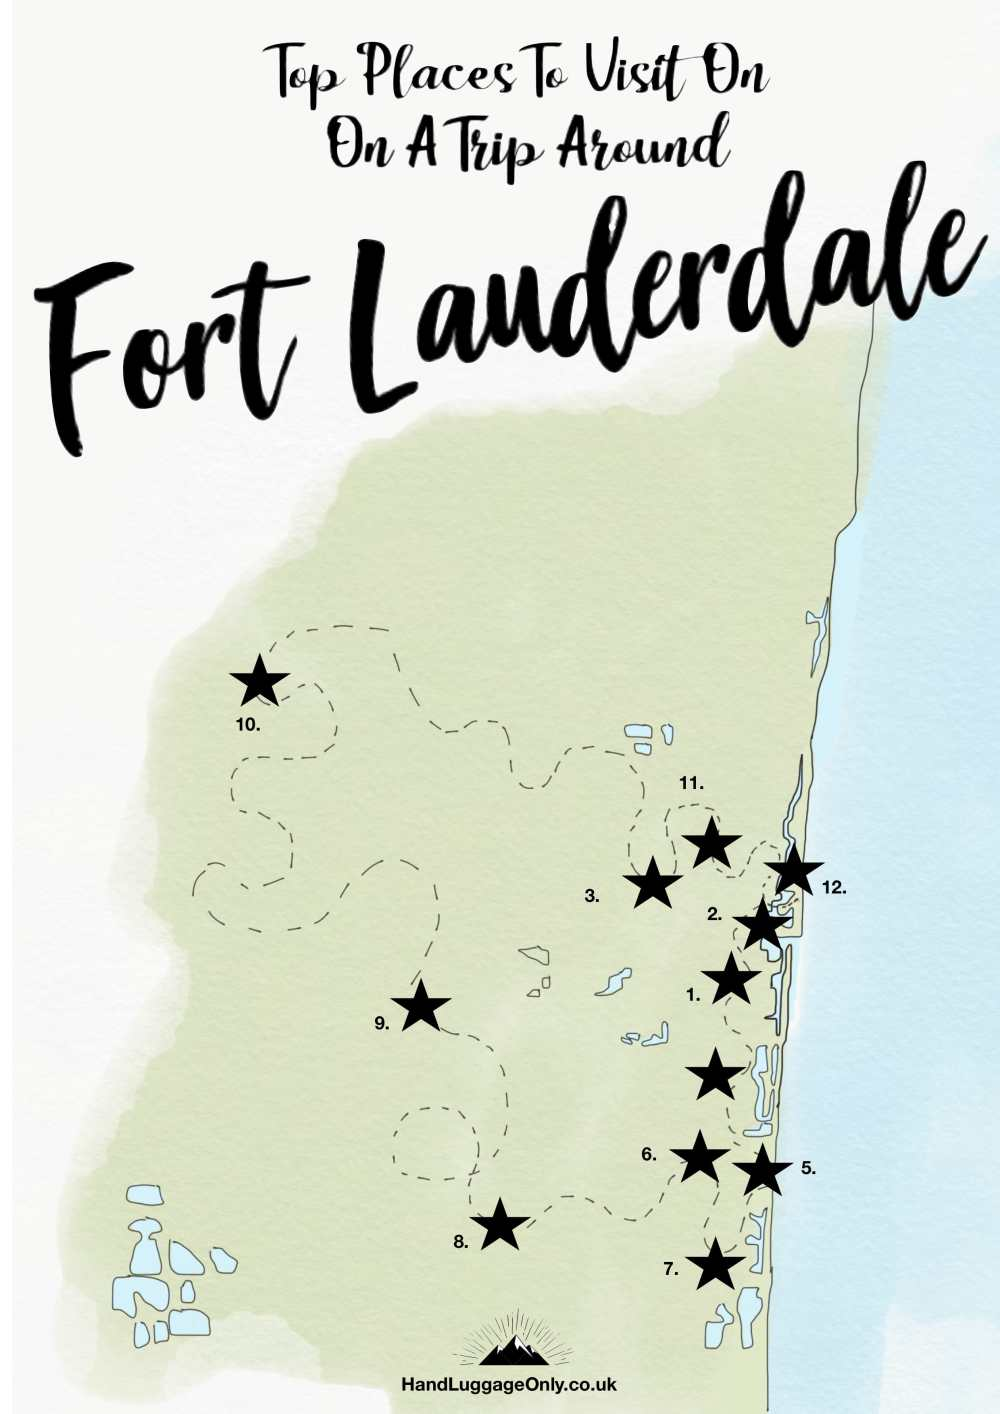 15 Best Things To Do In Fort Lauderdale Hand Luggage Only Travel Food Photography Blog